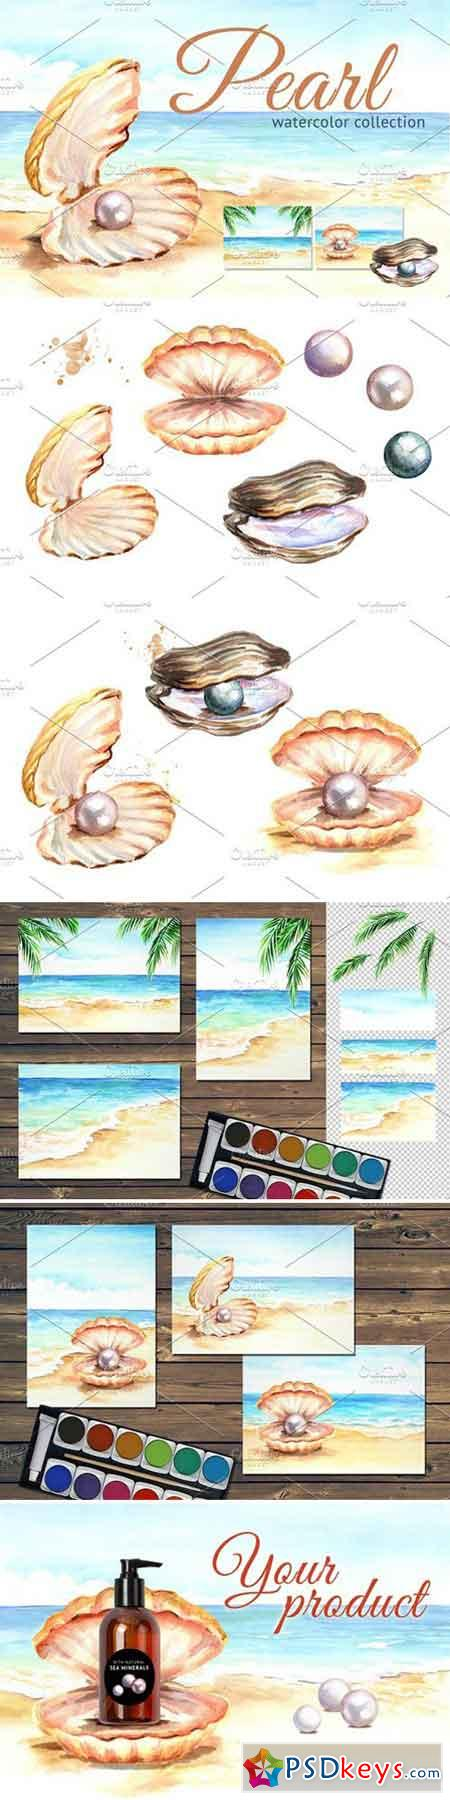 Pearls Watercolor collection 2340274